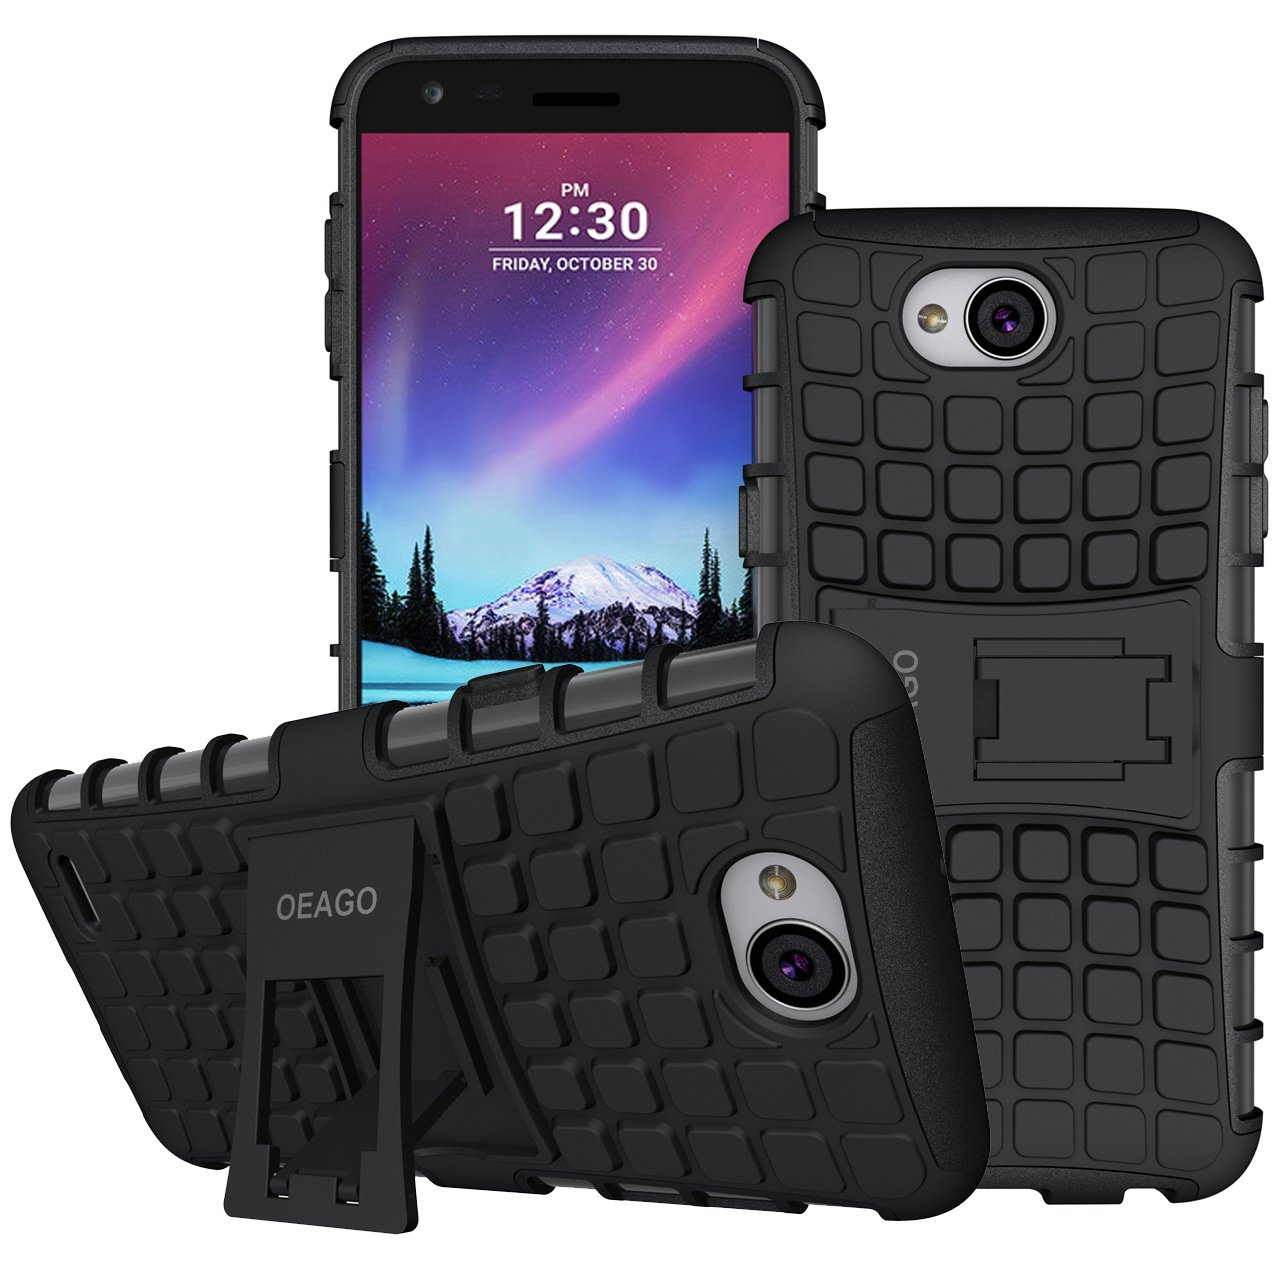 low priced cf1f8 1ac35 LG X Charge Case, LG Fiesta 2 LTE Phone Case, LG Fiesta LTE Case, LG X  Power 2 (2017) Case, OEAGO [Shockproof] [Impact Protection] Tough Rugged  Dual ...